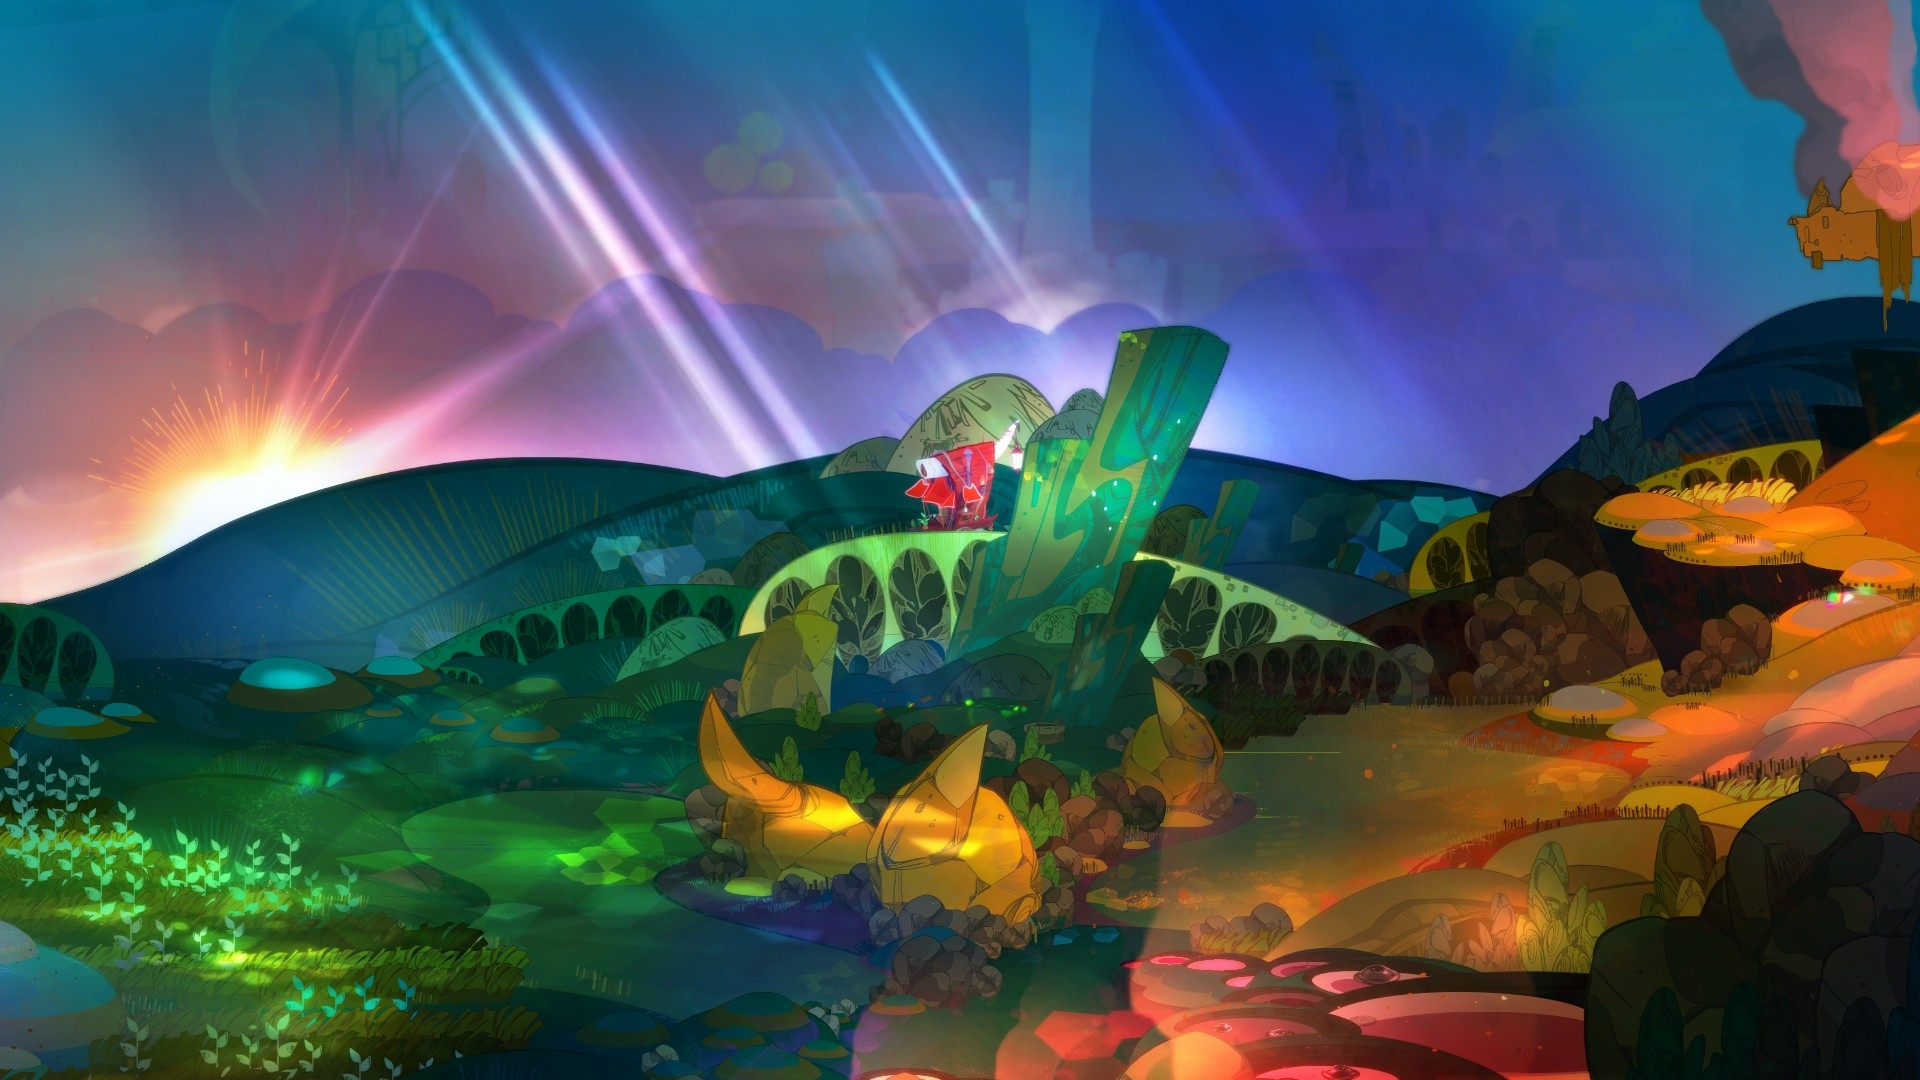 Pyre_Background